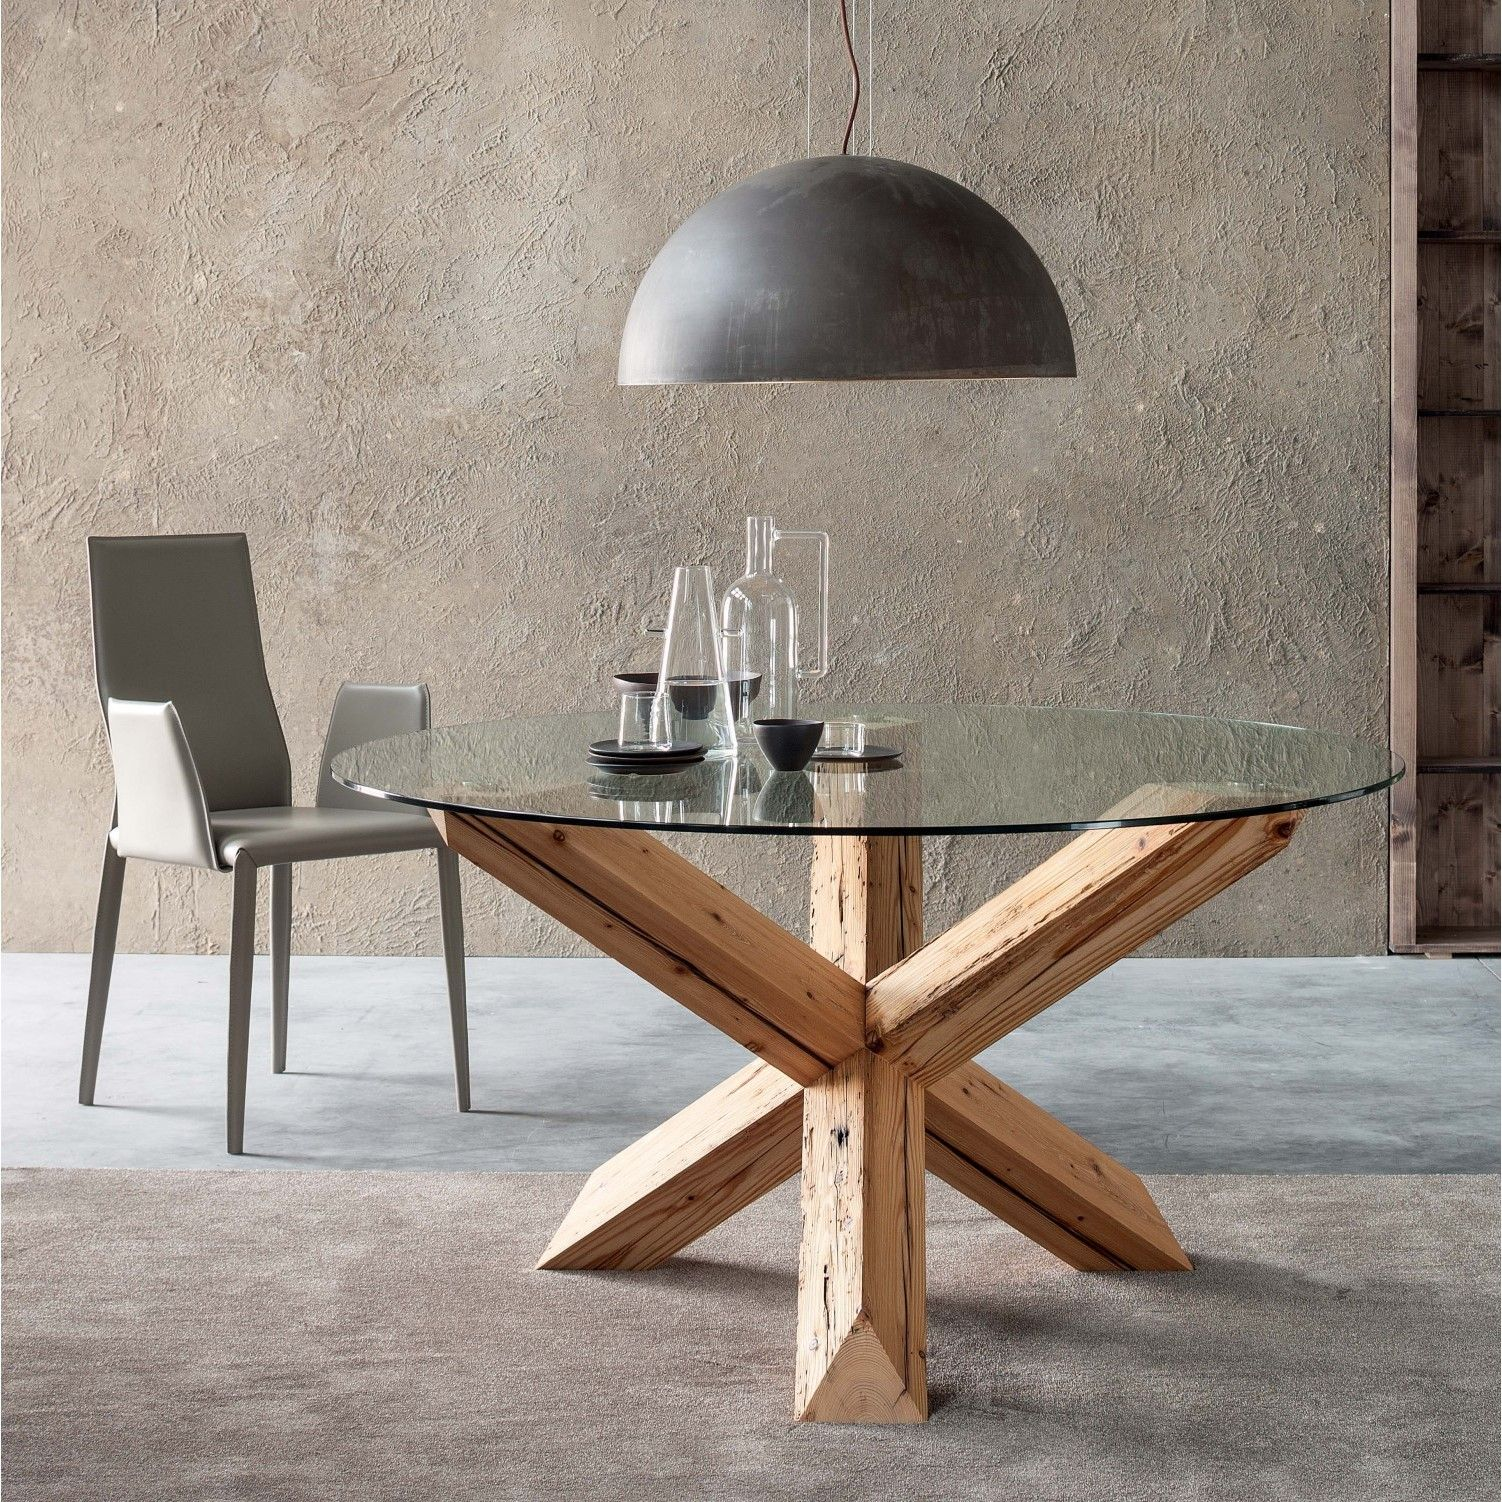 Image result for structure dinig table | Table de salle à ...